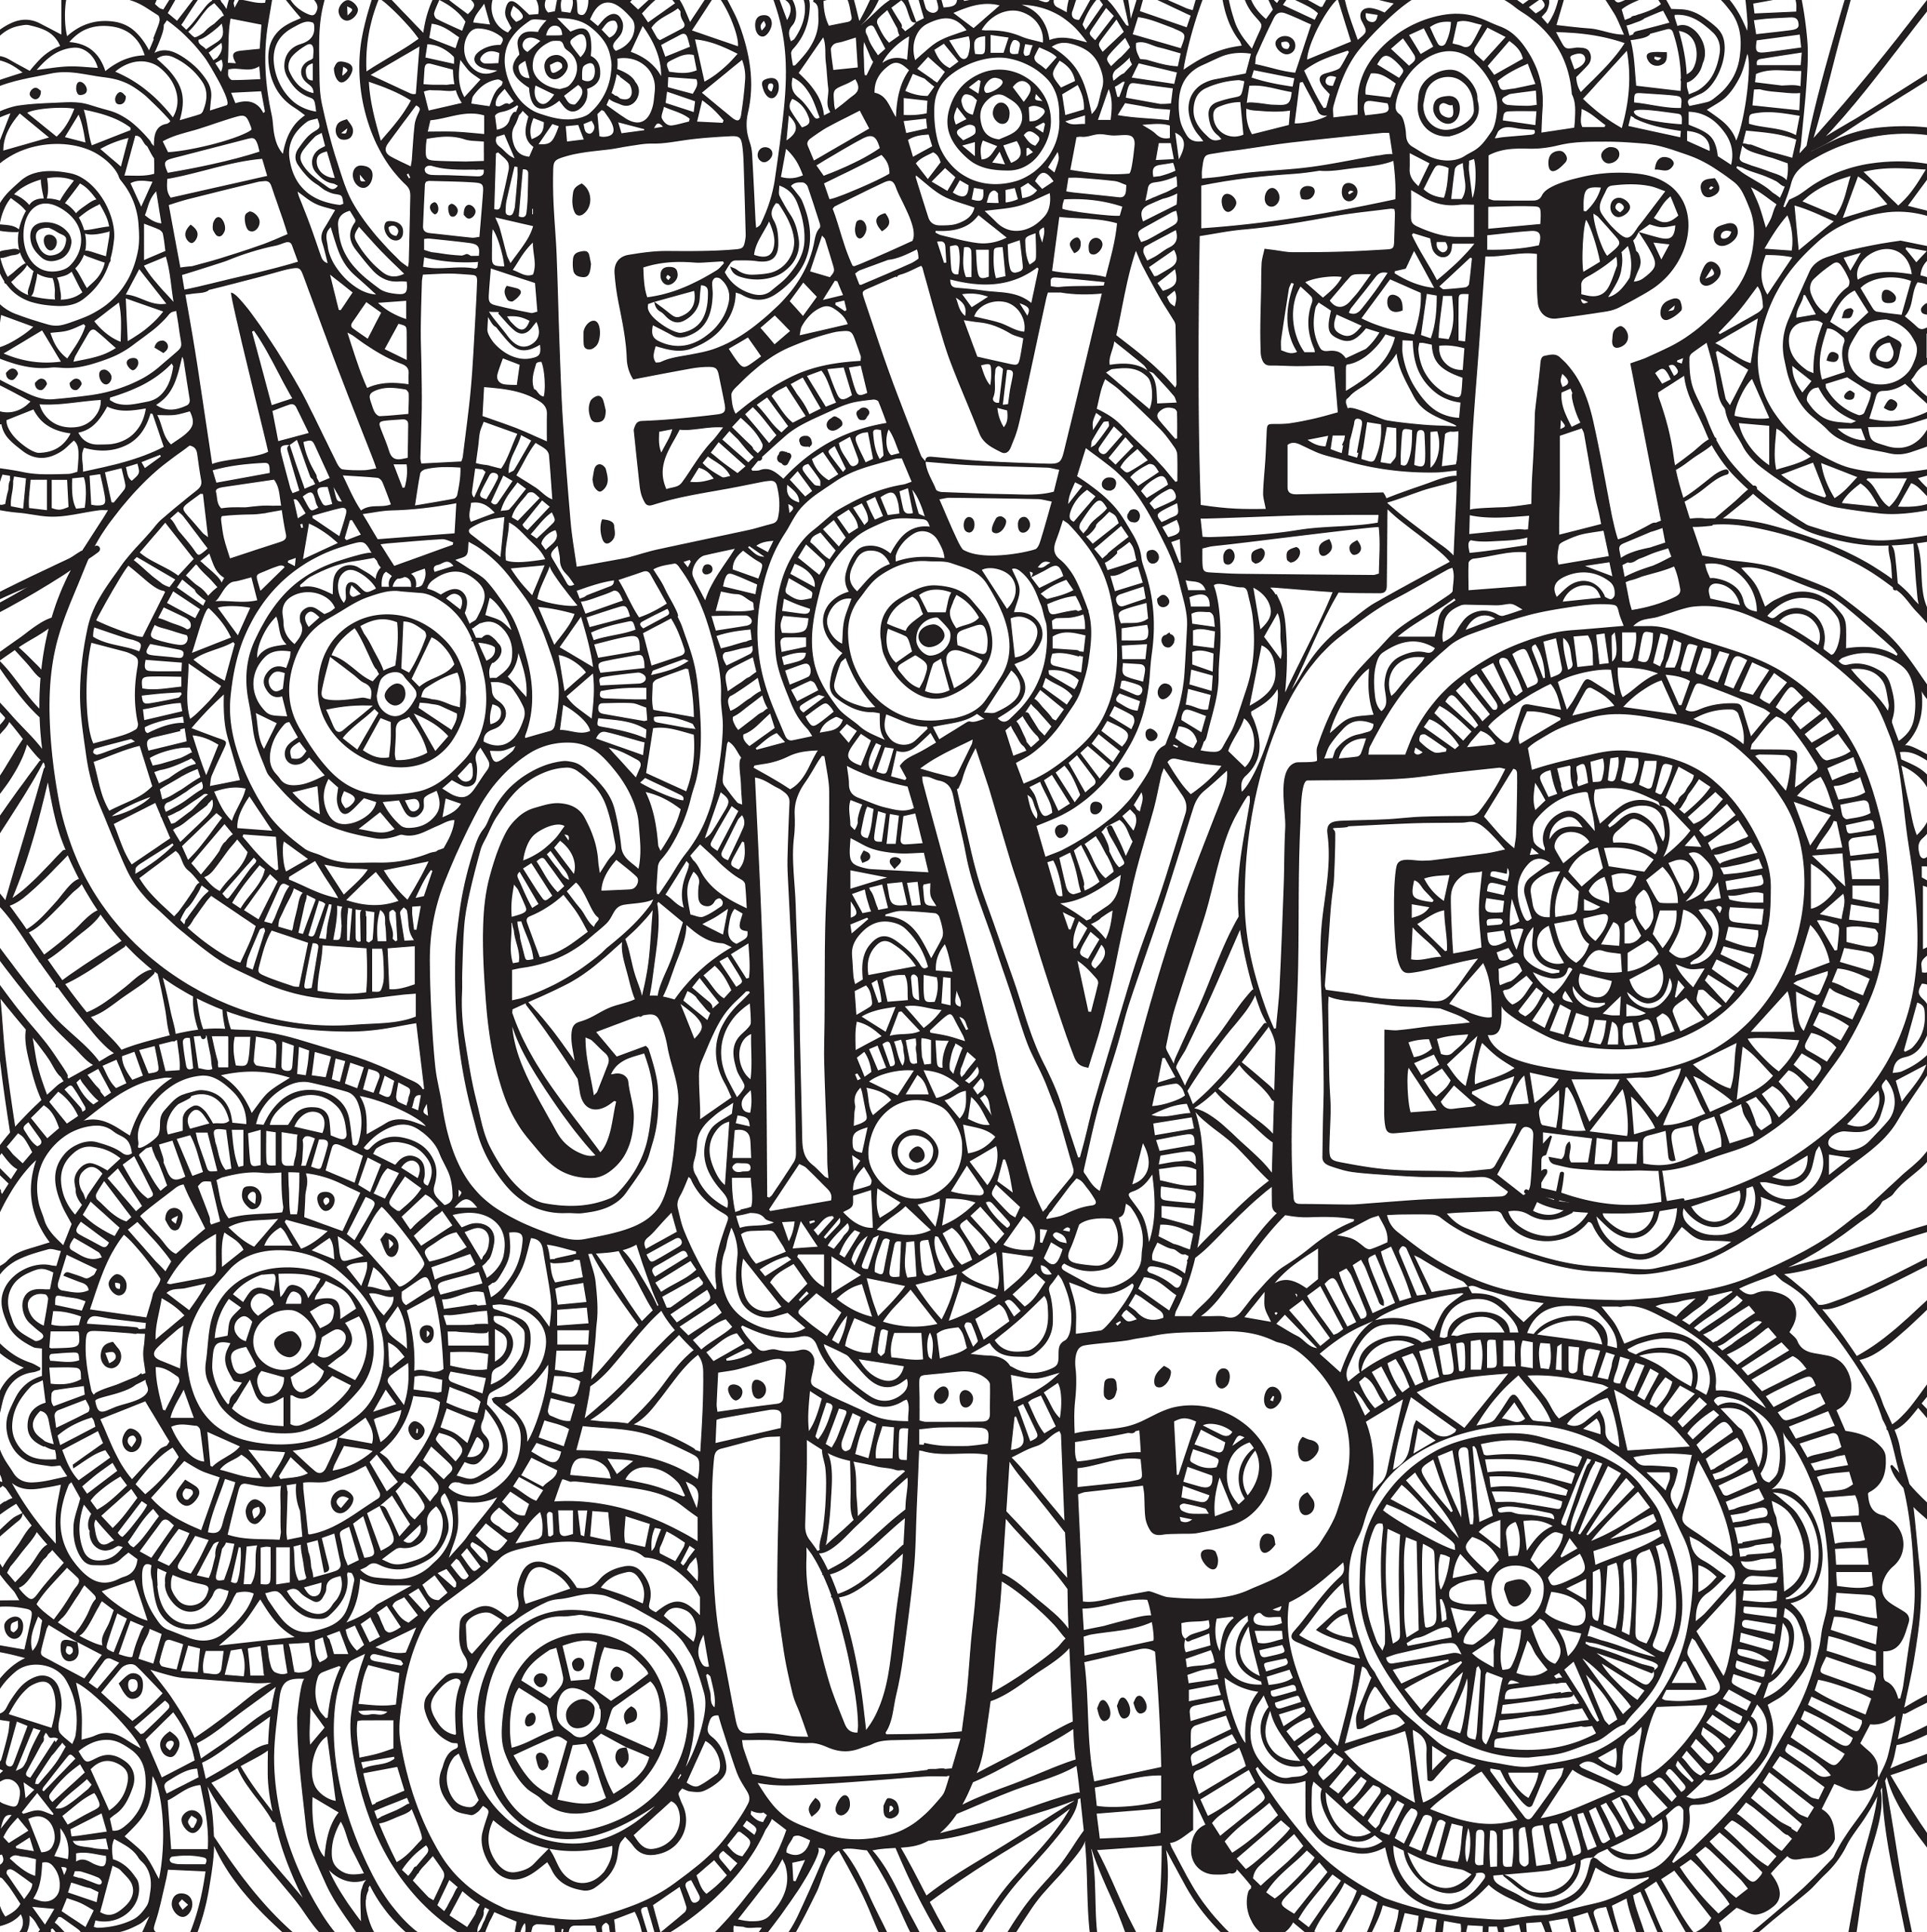 New Page Quote Coloring Sheets Free Colouring Pages Gallery Of Free Printable Quote Coloring Pages for Grown Ups Download